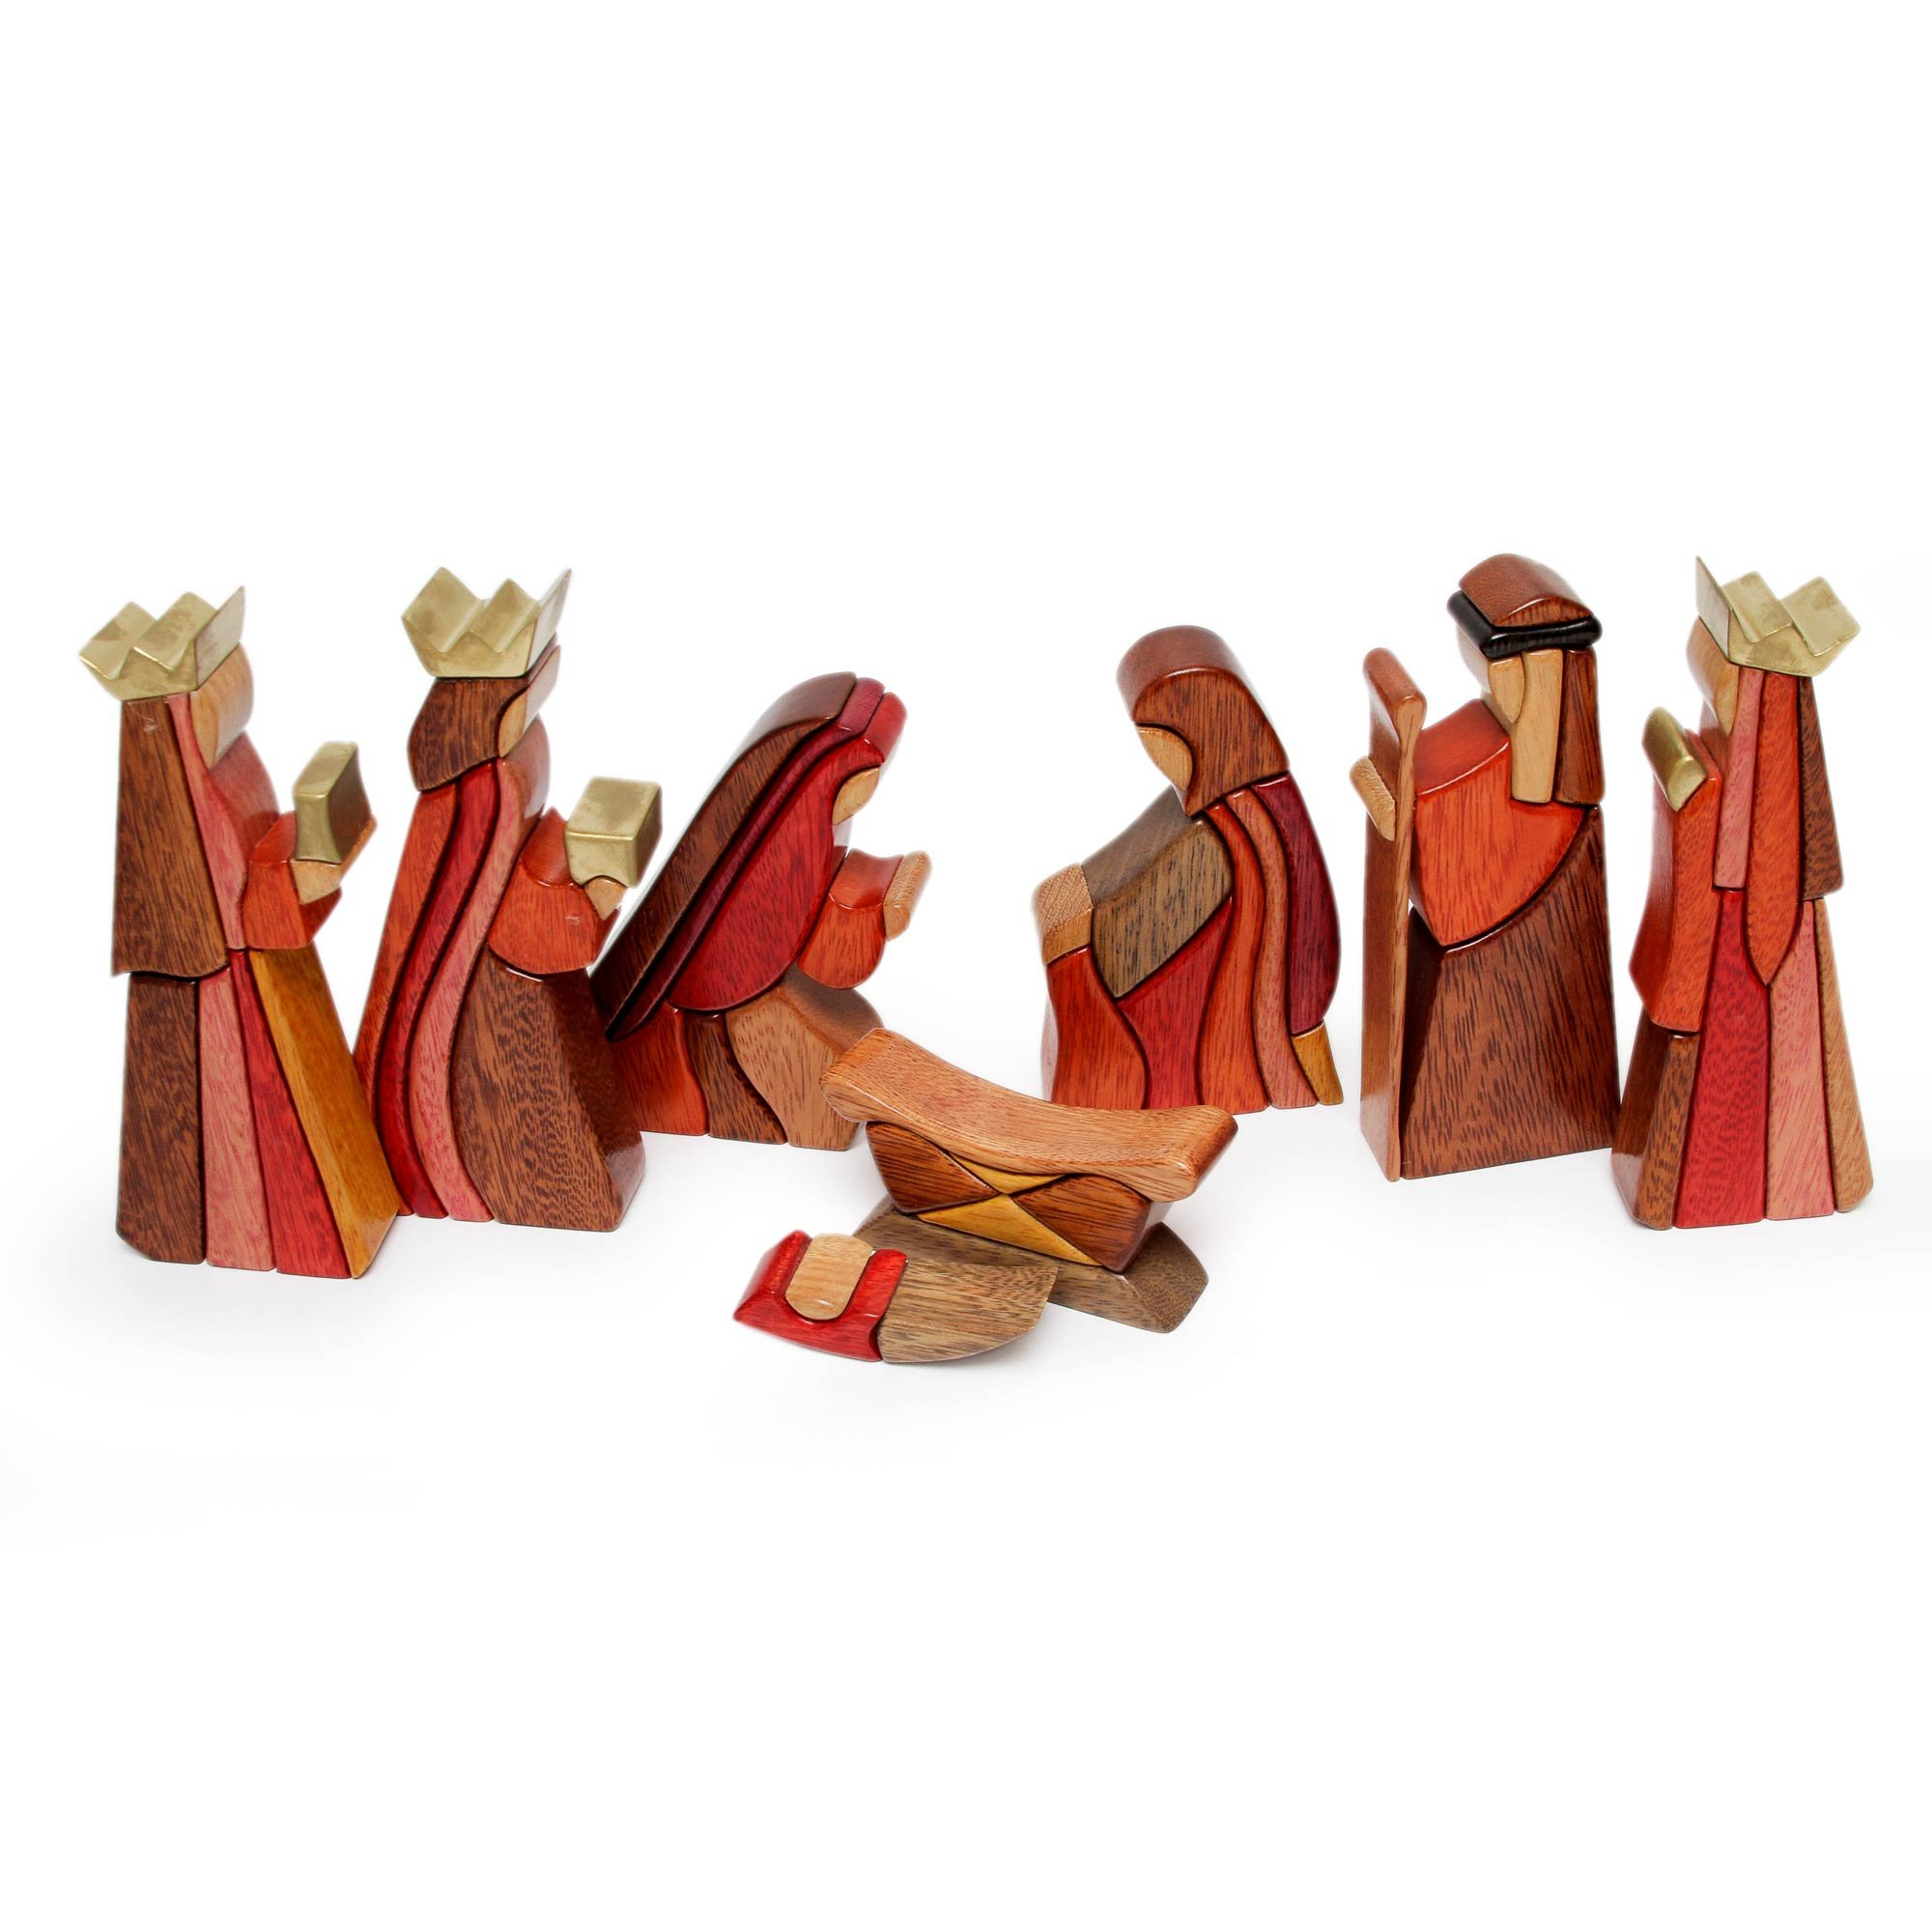 NOVICA Brown Religious Ishpingo Wood Sculpture,7''-0.8'' Tall 'Gifts For Baby Jesus' (set of 8)